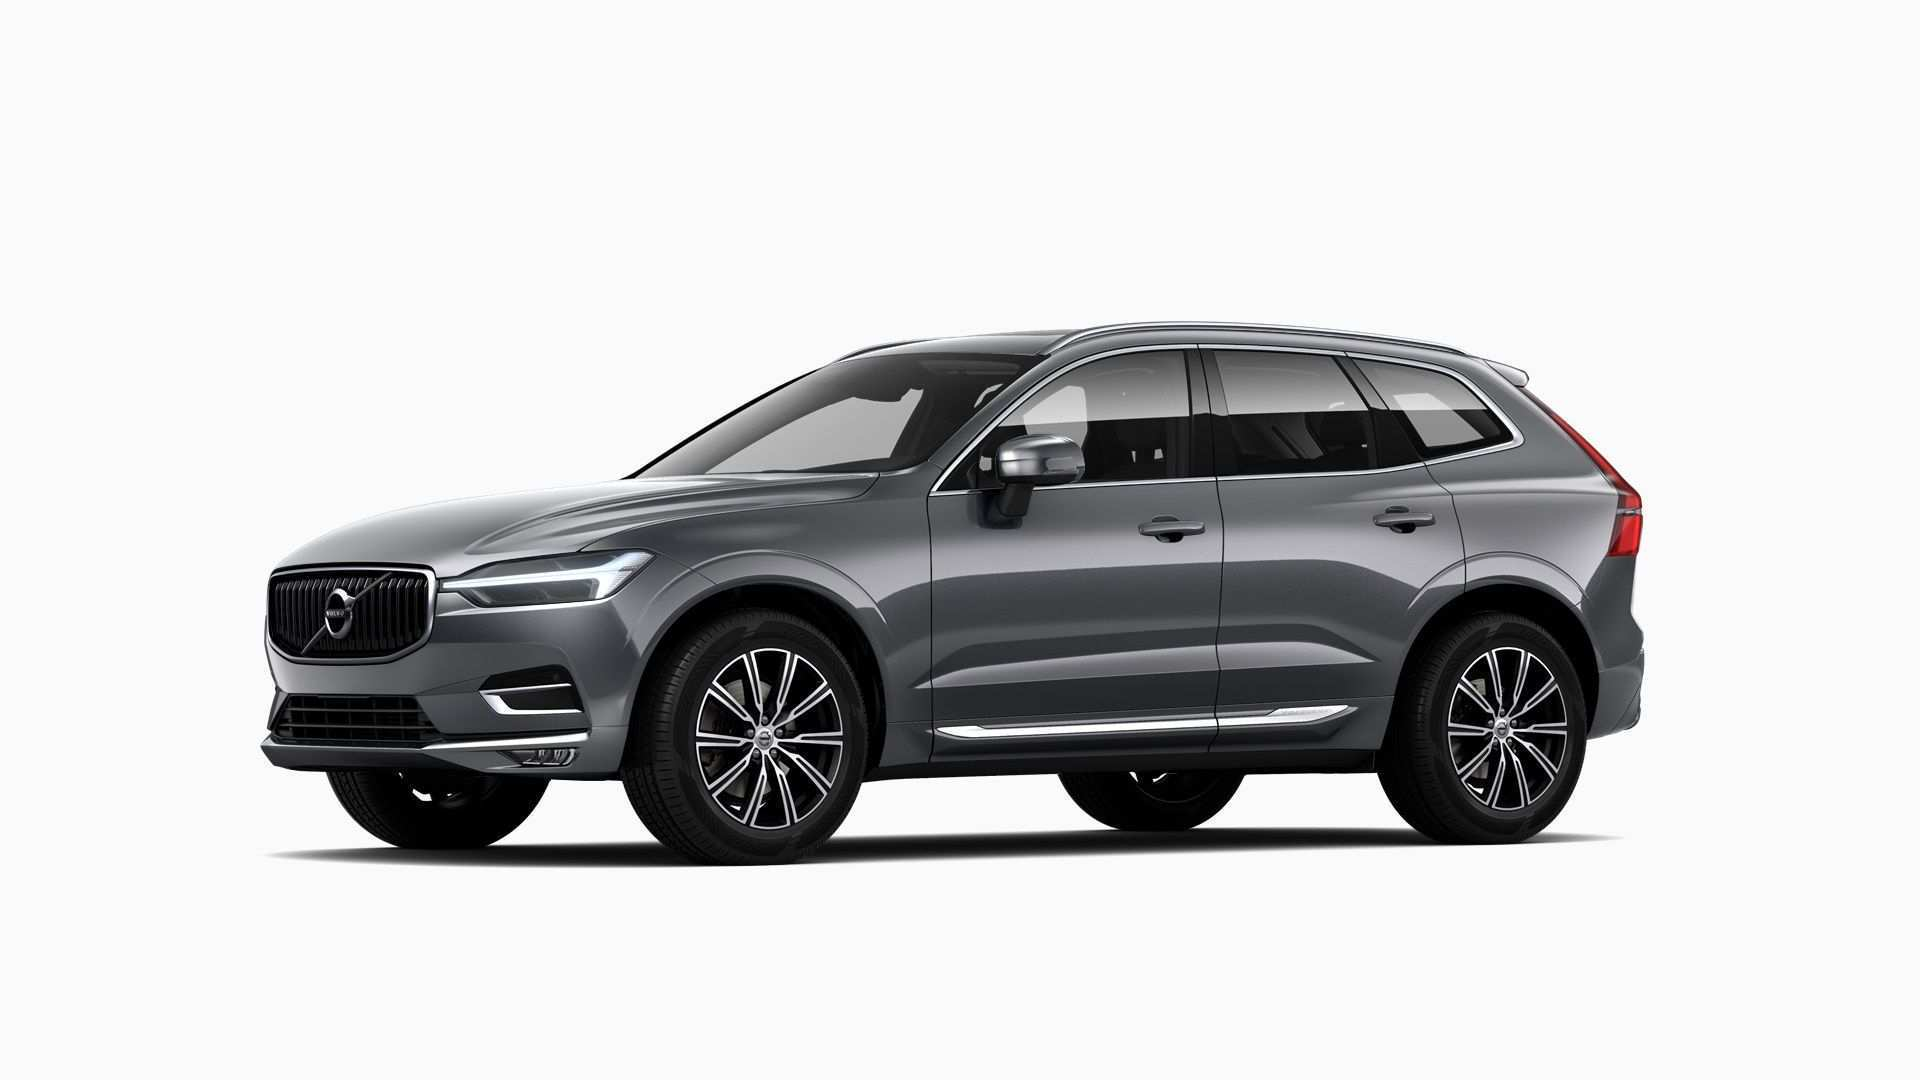 26 Concept of Volvo Xc60 2019 Osmium Grey Reviews by Volvo Xc60 2019 Osmium Grey